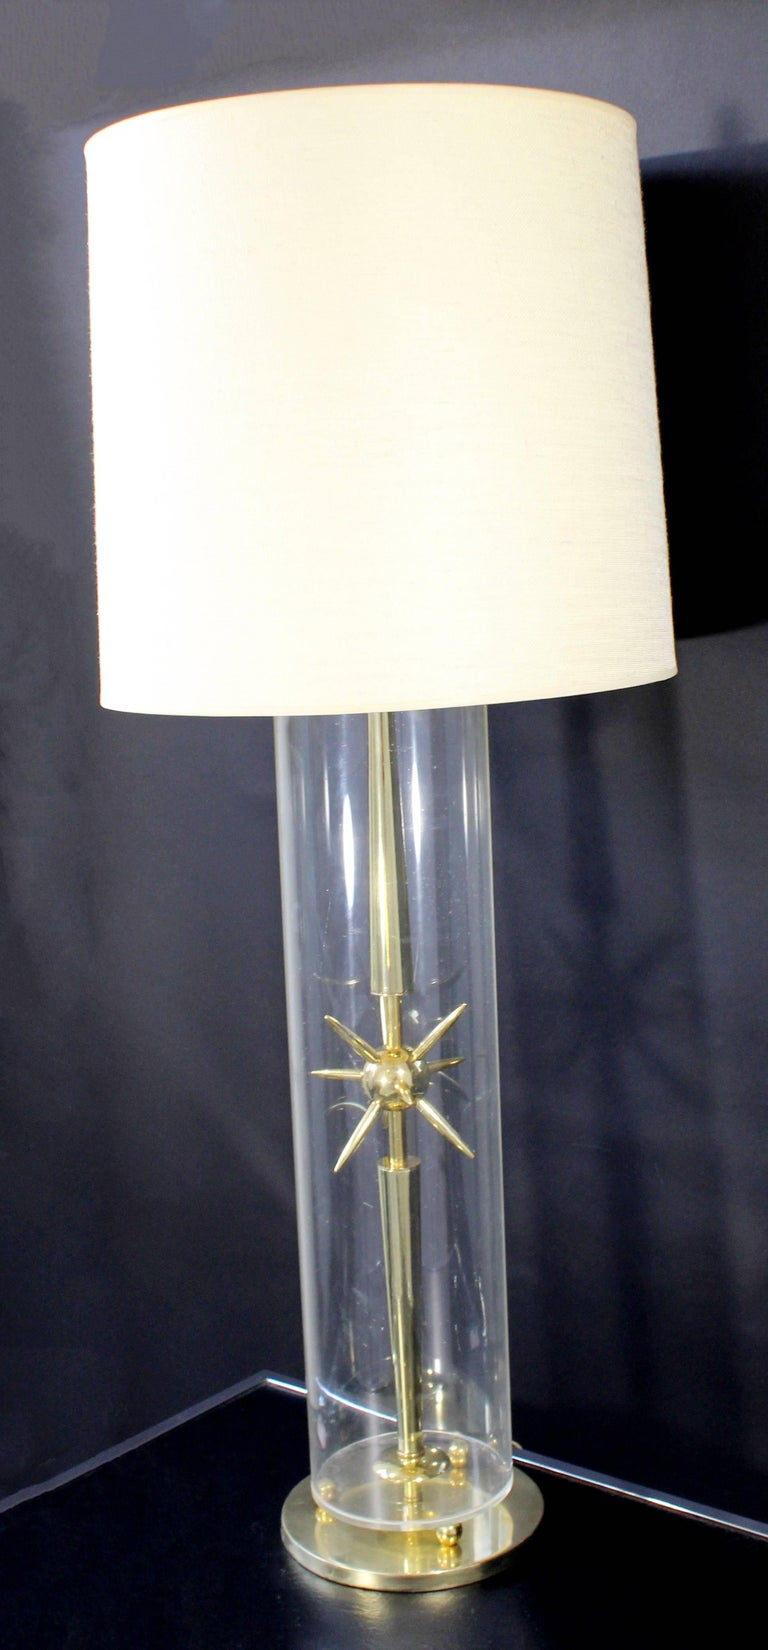 Mid-Century Modern Sputnik Atomic Glass & Brass Table Lamp by Mutual Sunset Co. In Good Condition For Sale In Keego Harbor, MI